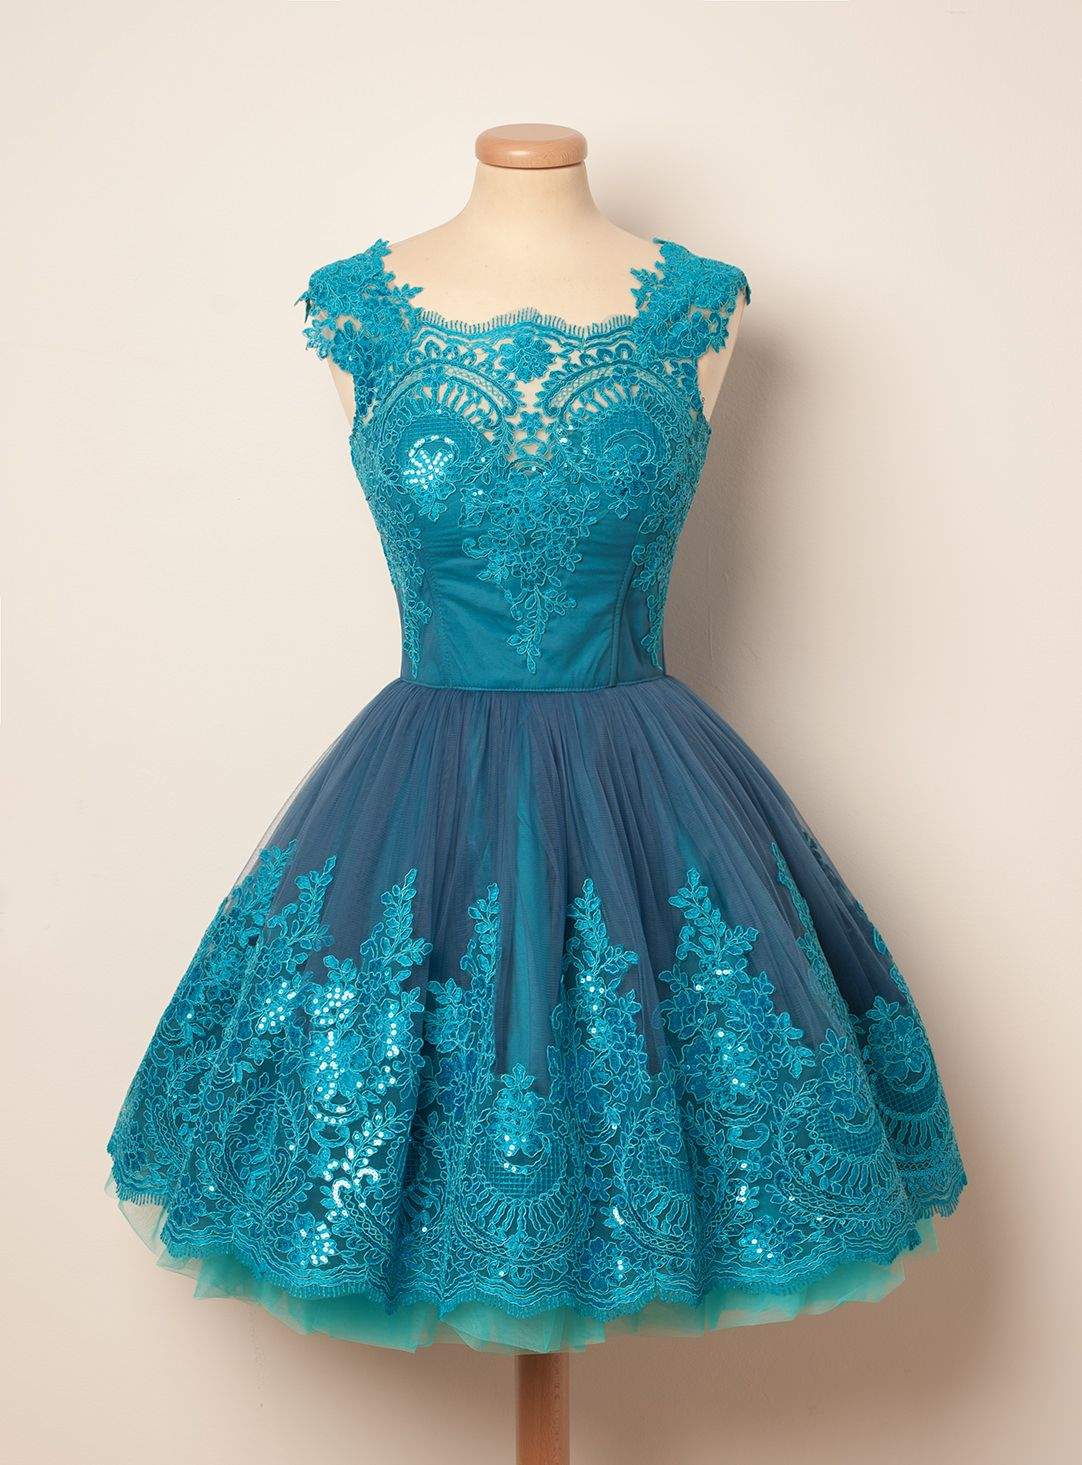 Add some sugar and spice to a party with a dessert dress made of ...